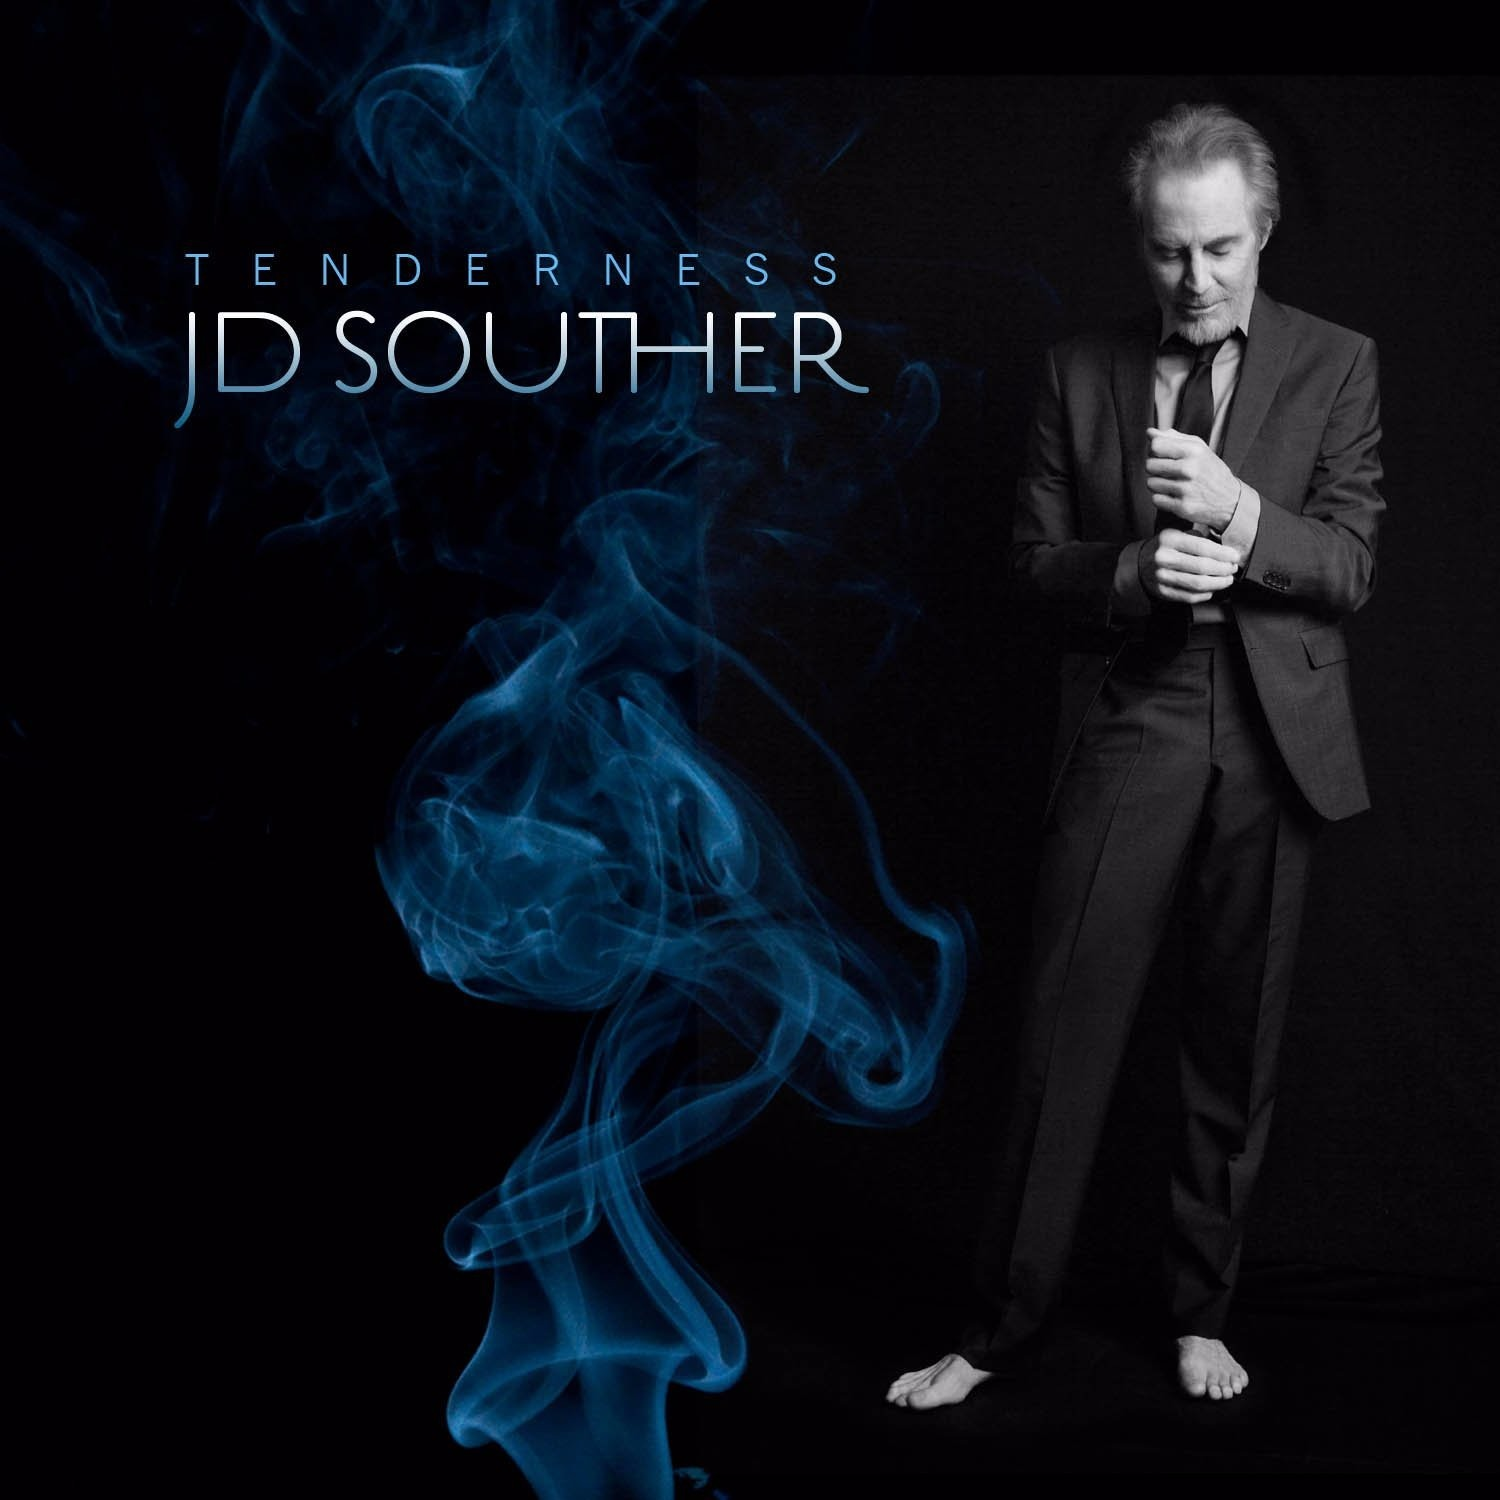 Cover of J.D. Souther's recent album Tenderness